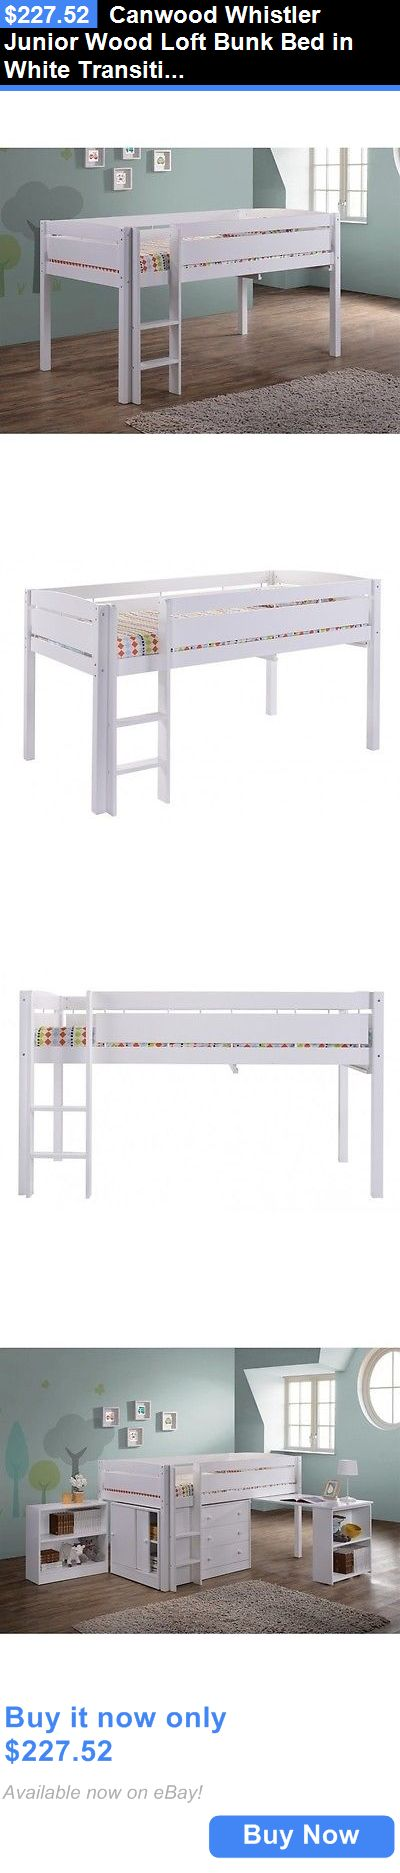 Kids Furniture: Canwood Whistler Junior Wood Loft Bunk Bed In White Transitional Kids BUY IT NOW ONLY: $227.52